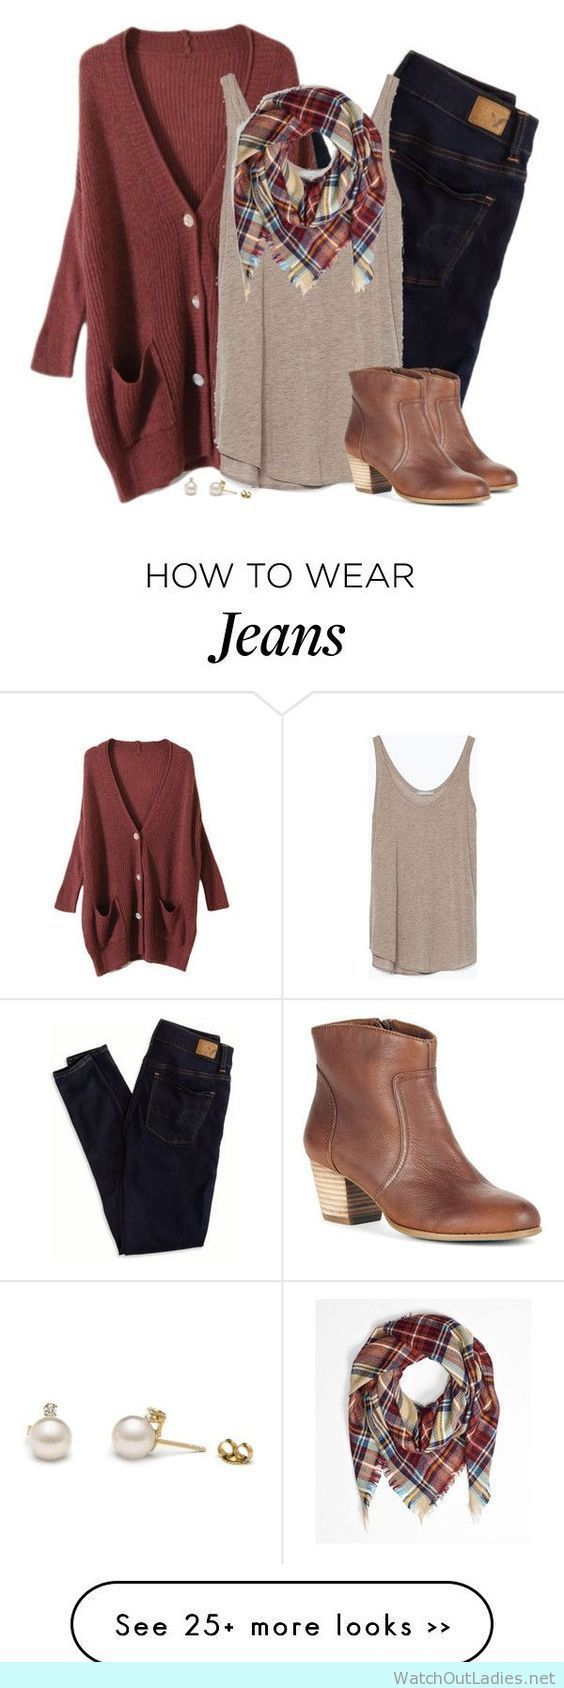 How to wear earth tones with jeans this fall